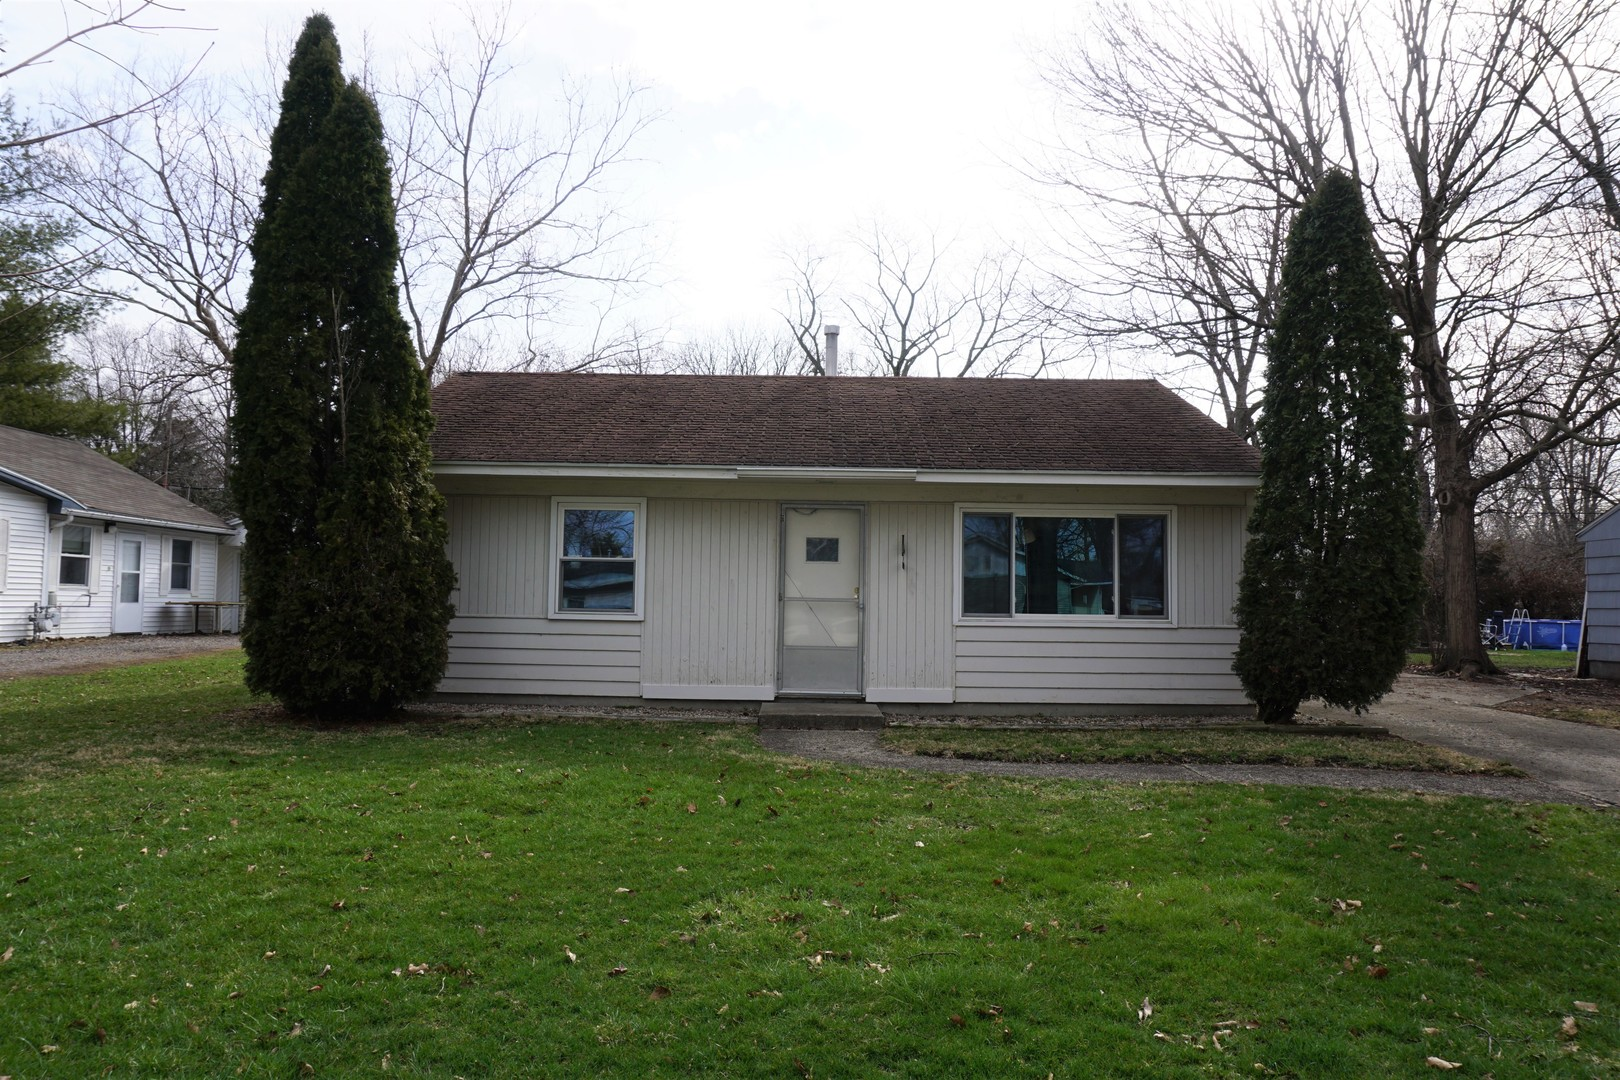 1316 Hollycrest Drive, Champaign in Champaign County, IL 61821 Home for Sale